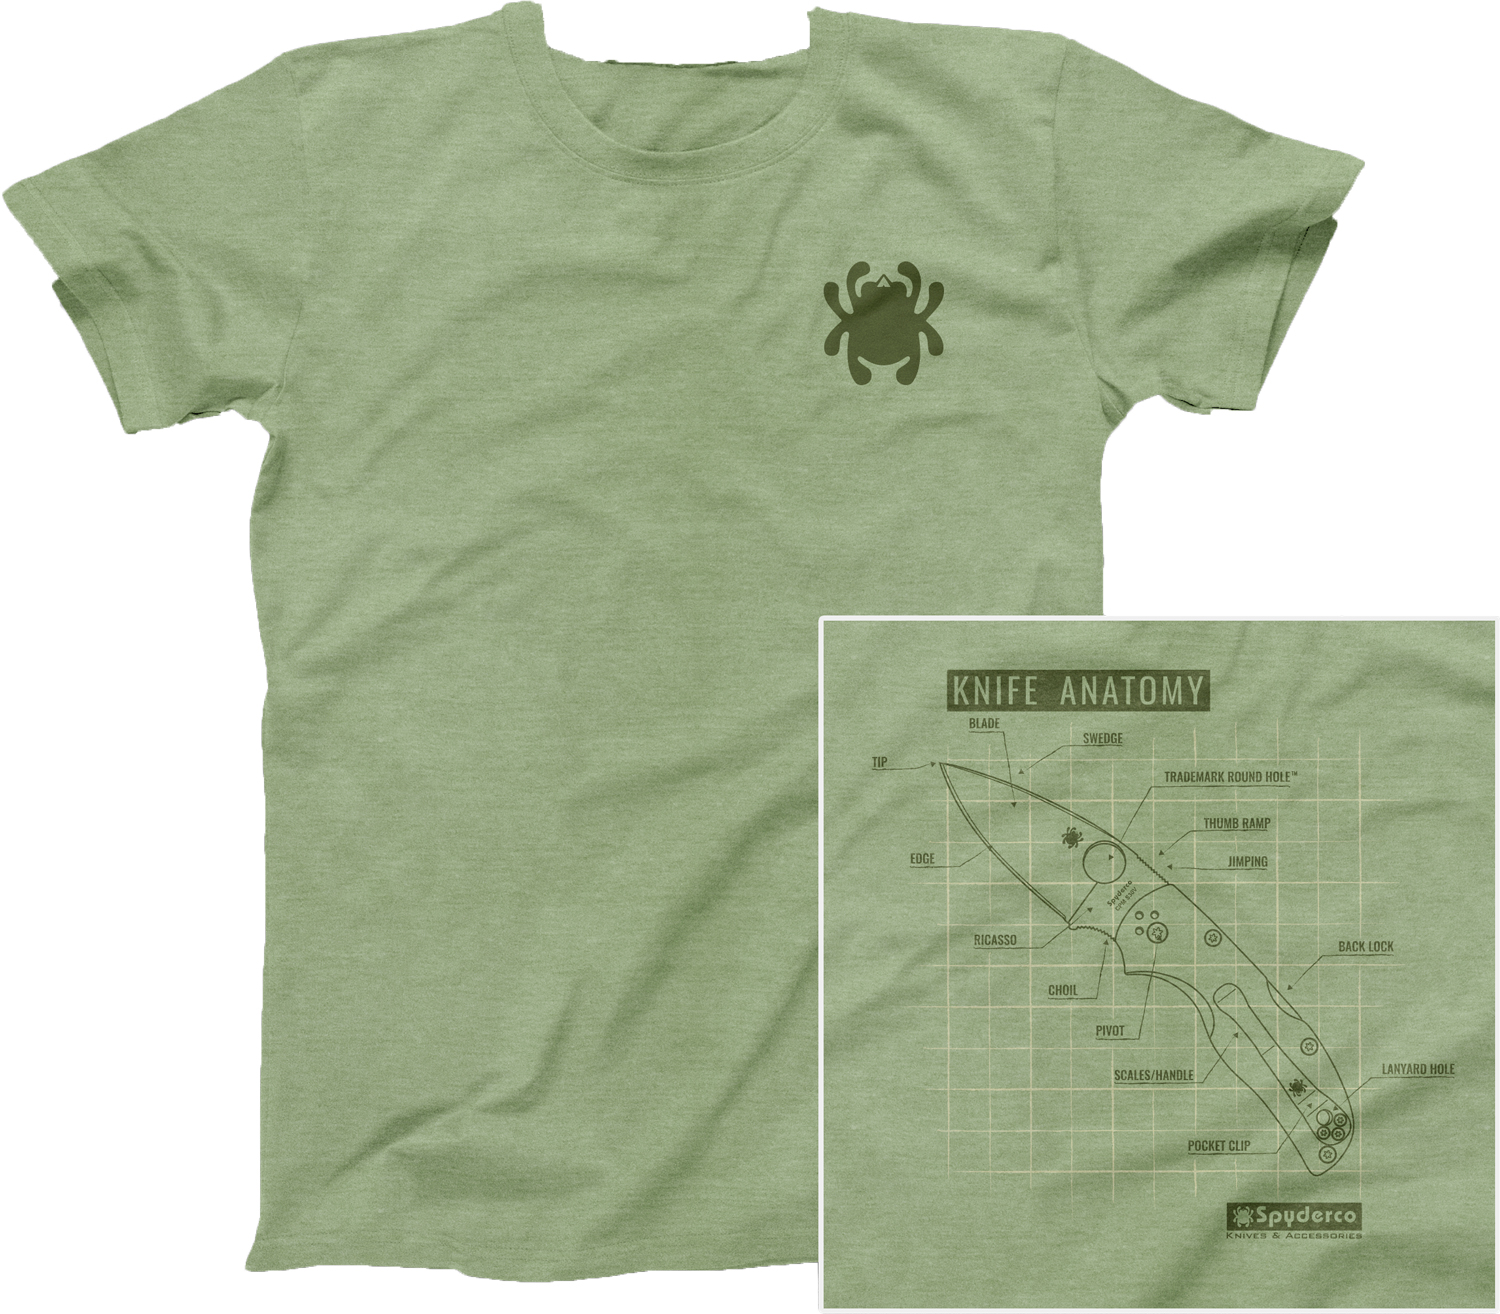 Spyderco Knife Anatomy Unisex T-Shirt, Heather Green, XXXL